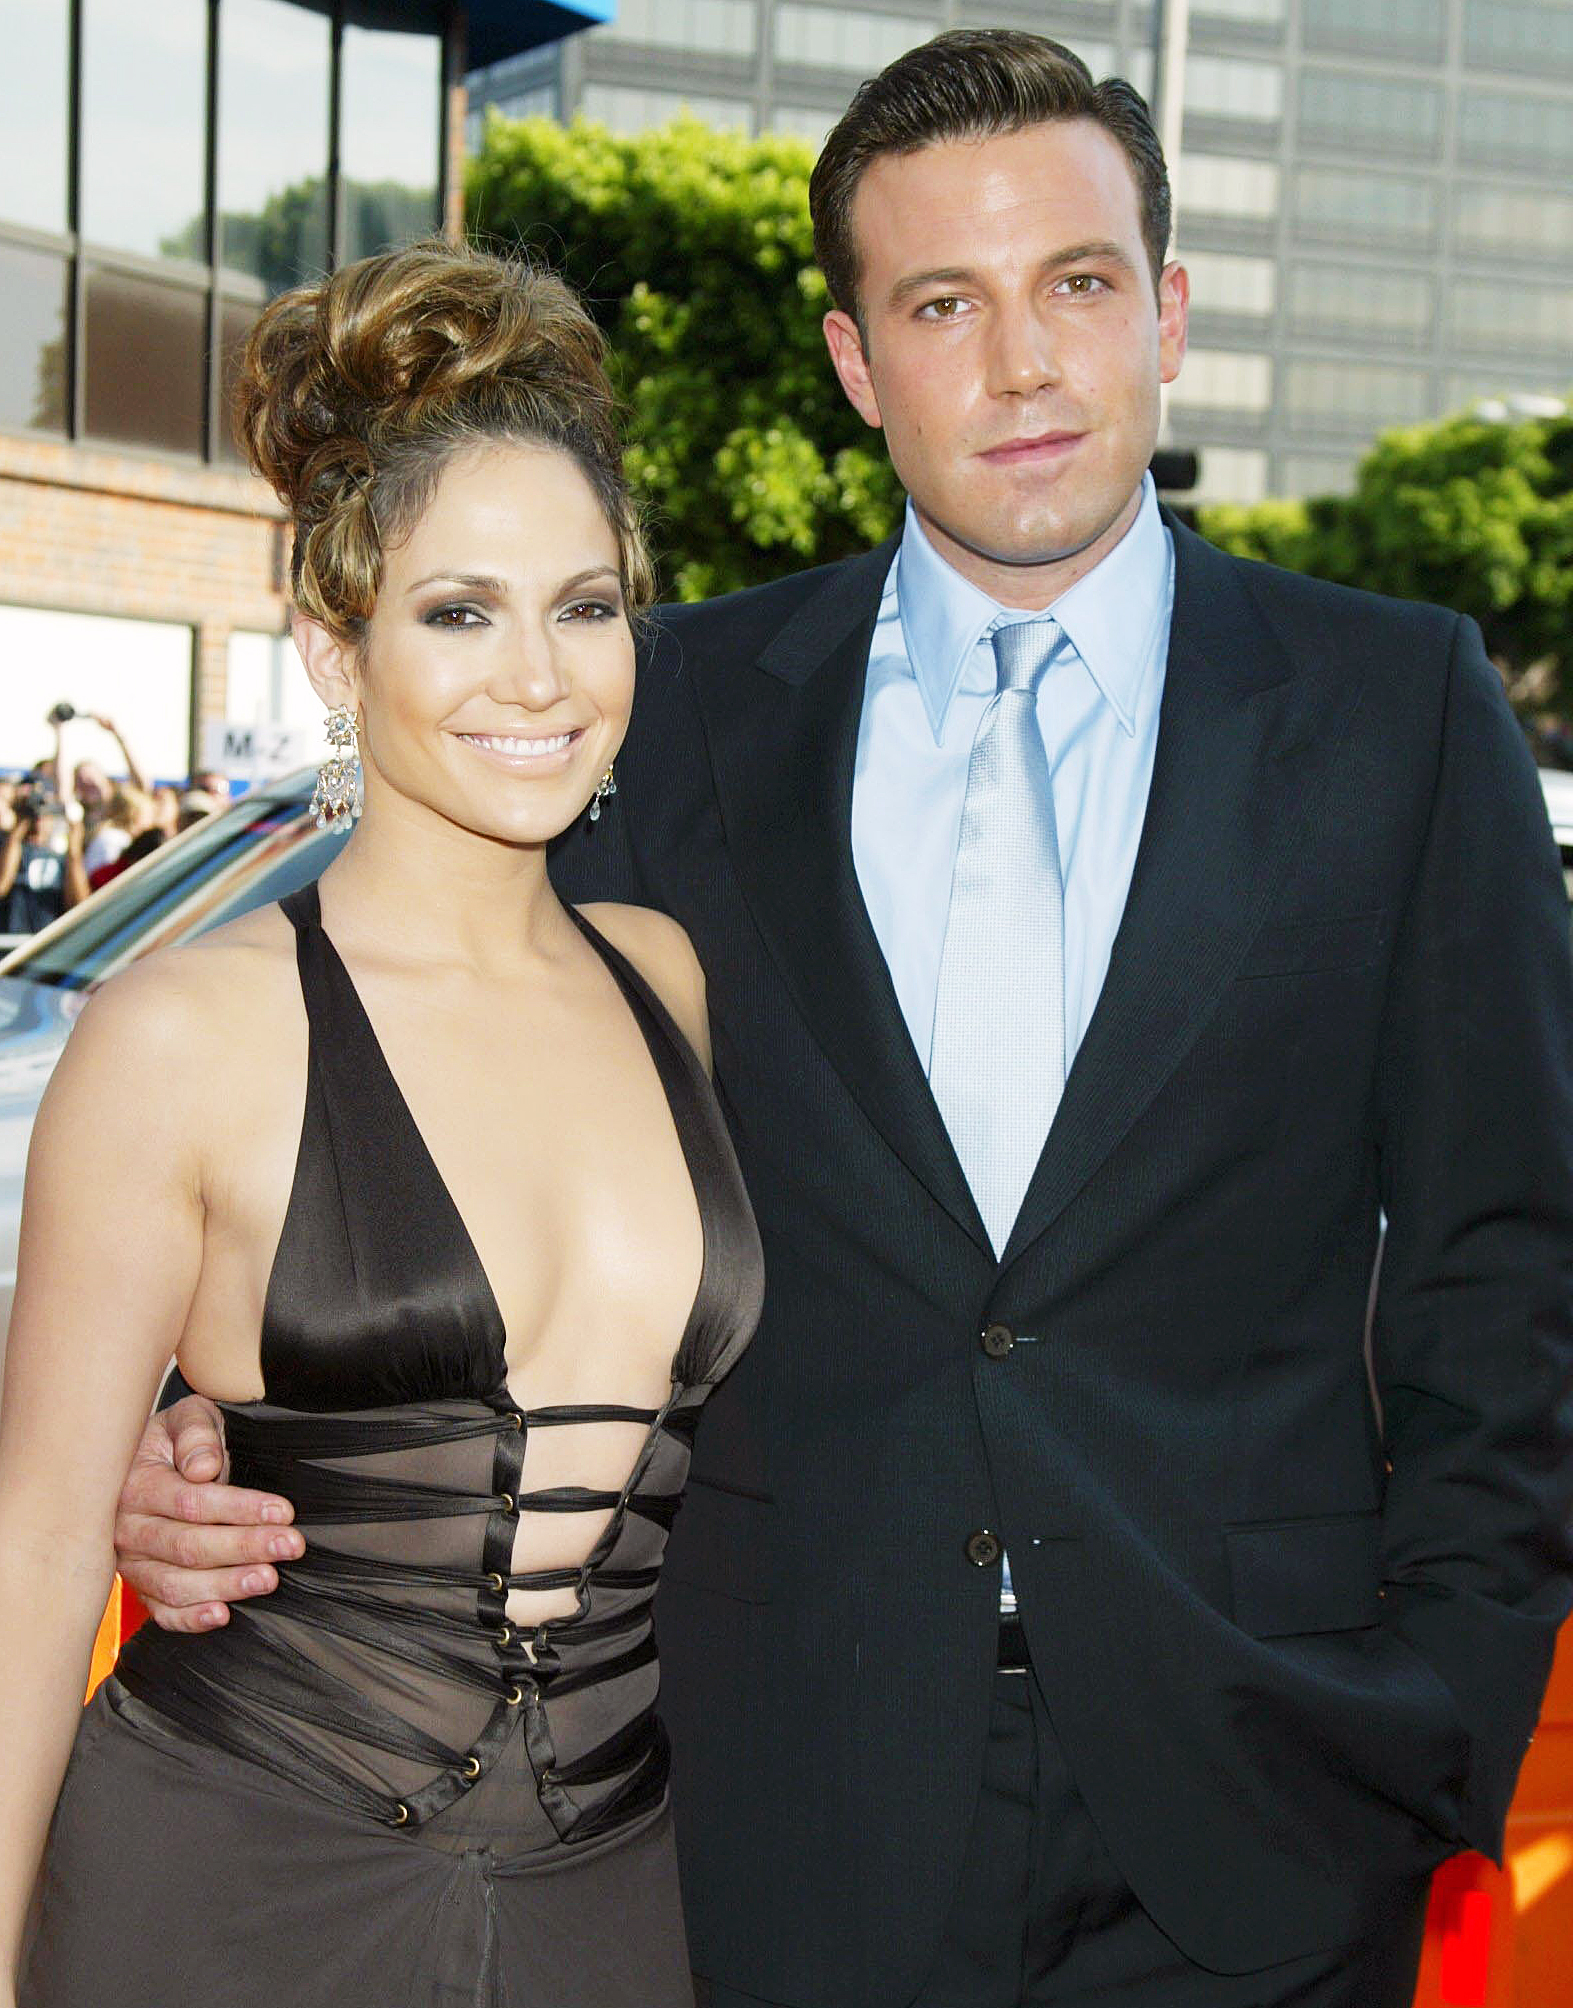 Ben Affleck Recalls People Being Mean Sexist Racist to Ex Jennifer Lopez When They Dated